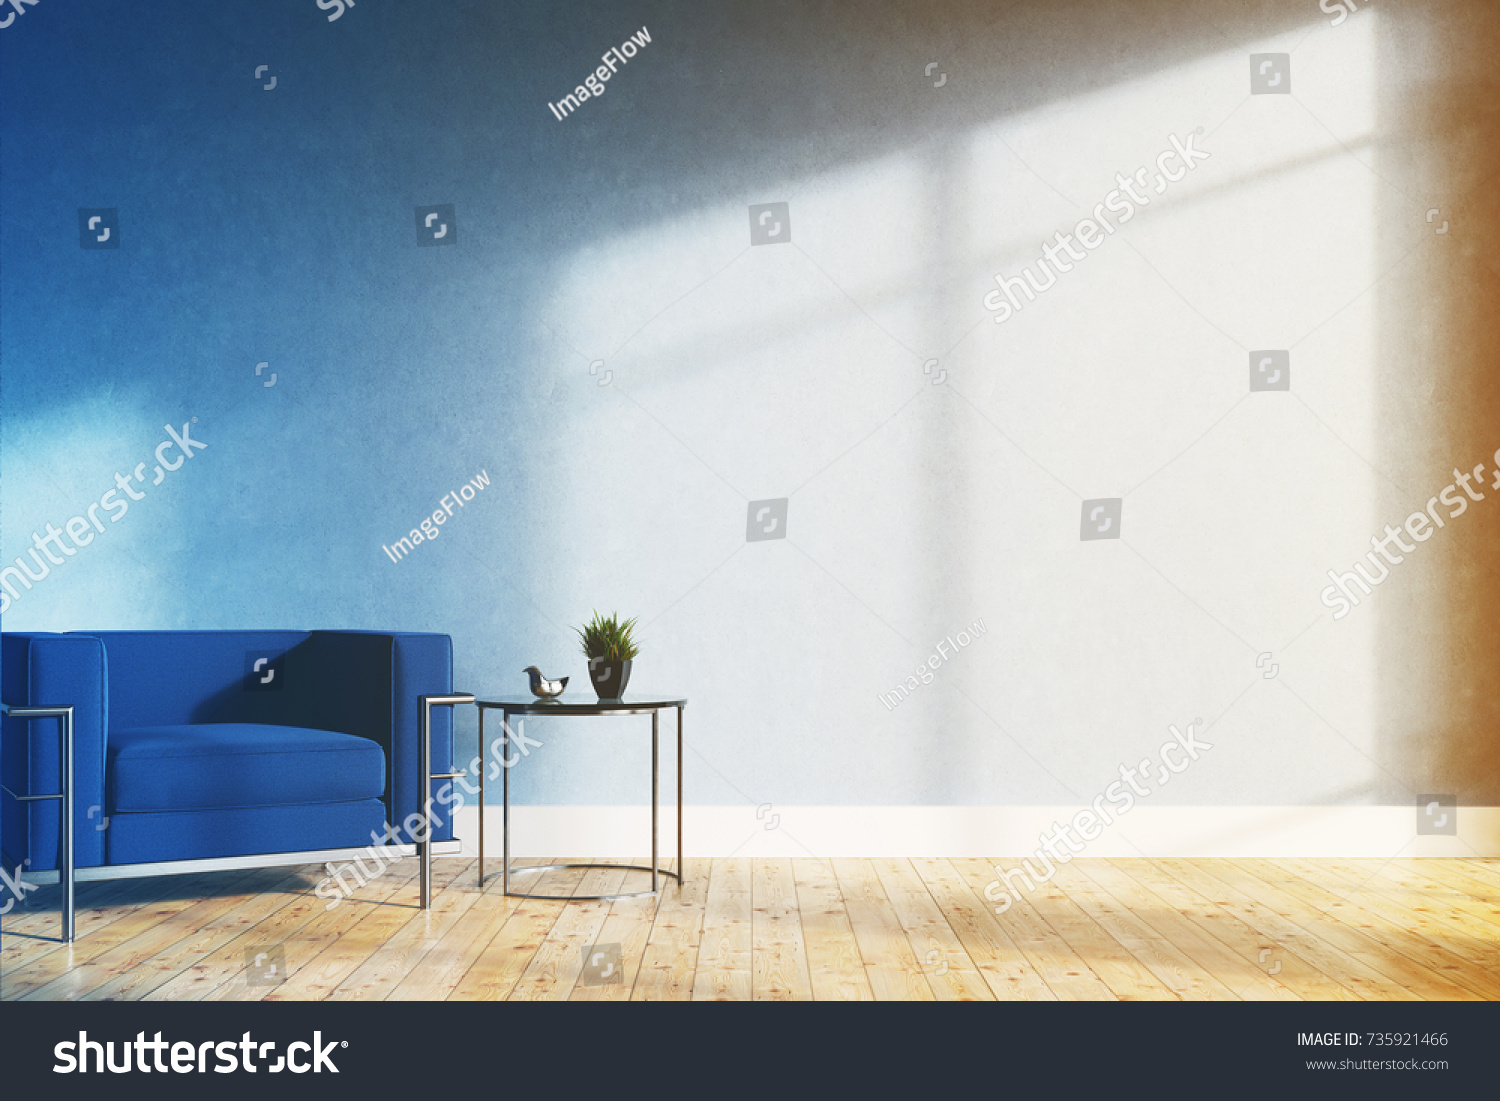 Minimalistic Living Room Interior With Blue Walls, A Wooden Floor, A Soft  Blue And Part 88